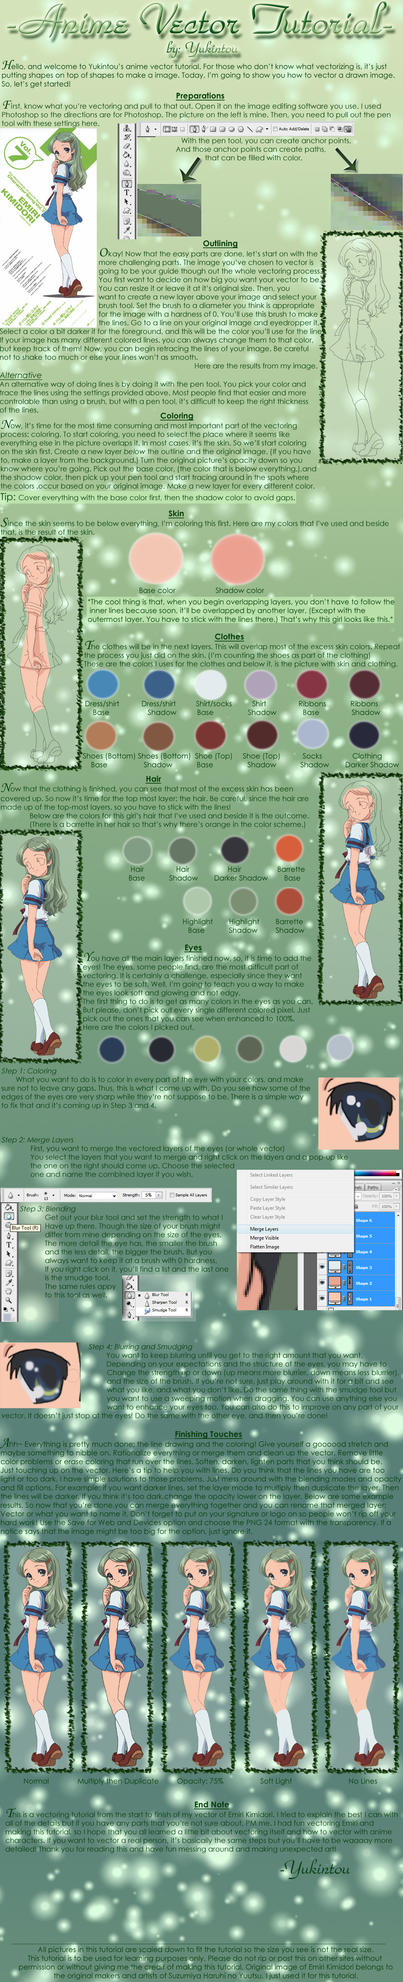 Anime Vector Tutorial by Yukintou